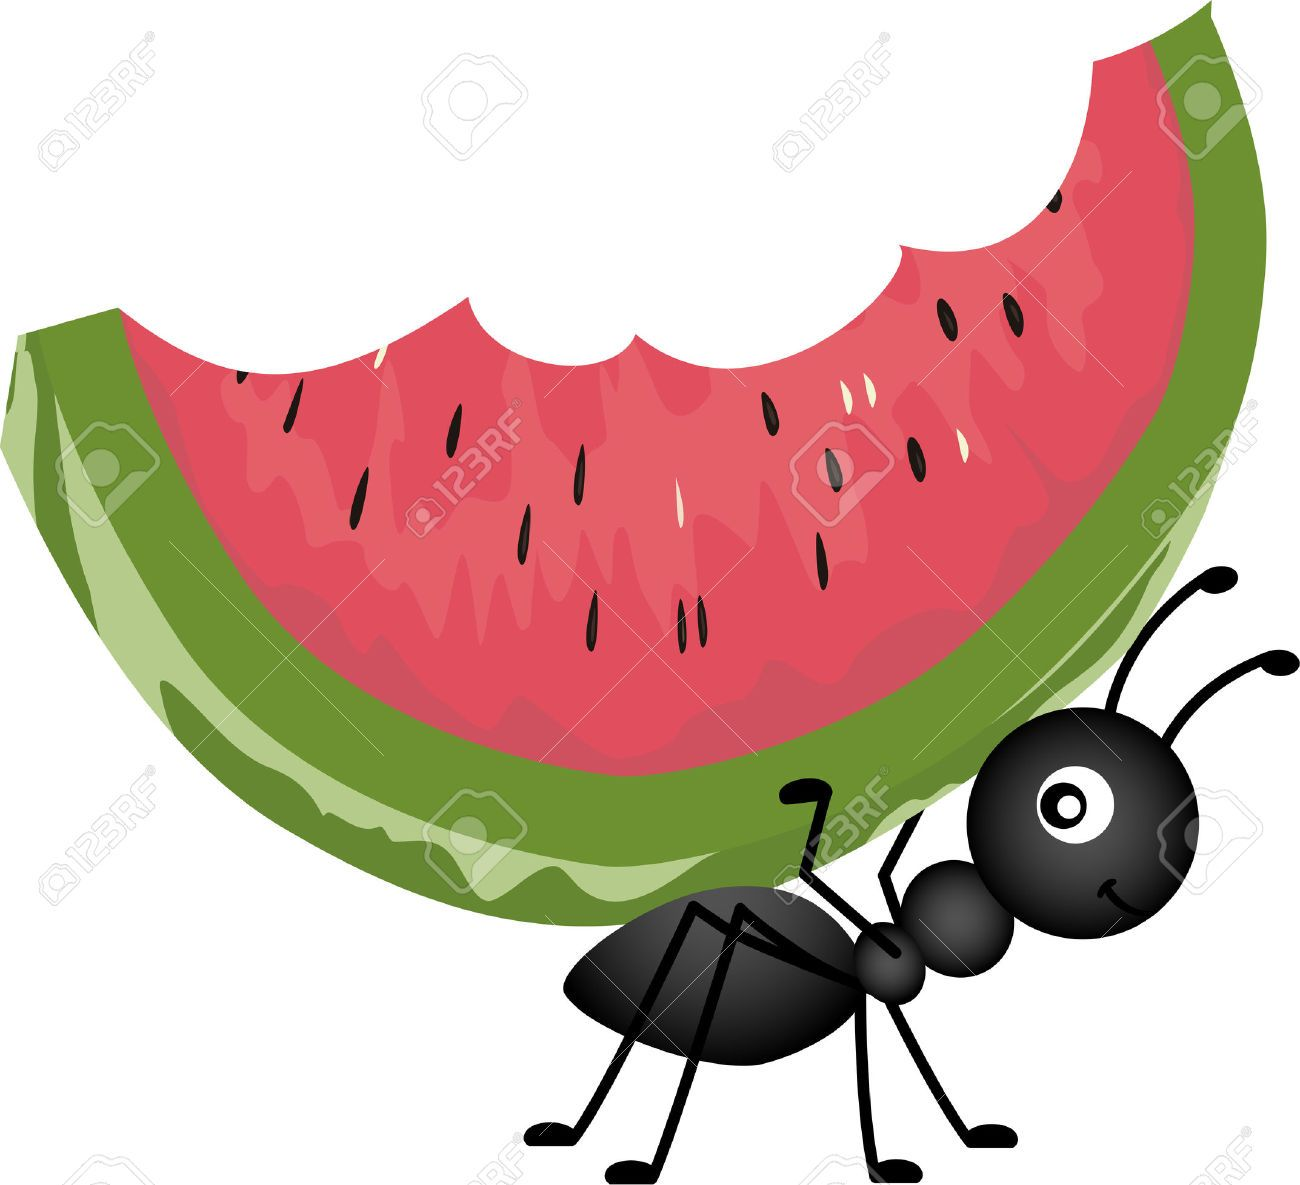 picnic food : Ant Carrying Watermelon Illustration.